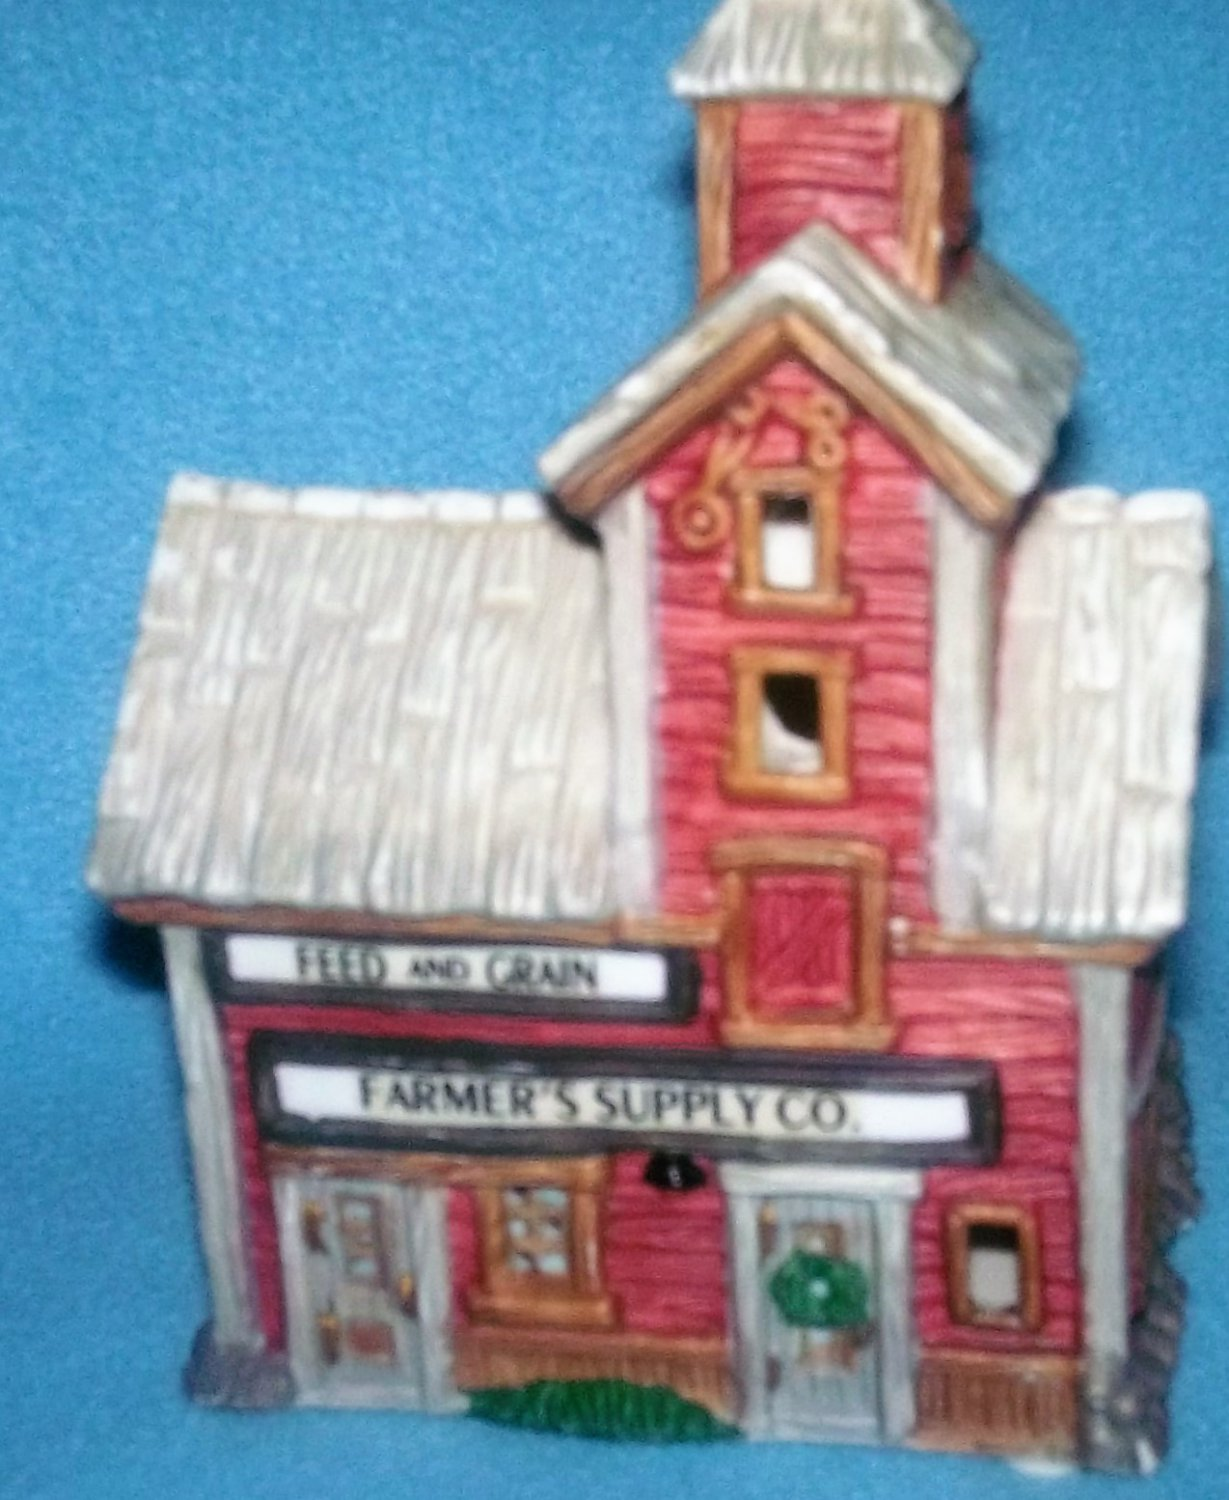 Vintage 1995 HOME TOWN AMERICA Christmas Village FARMER'S SUPPLY CO. Mini Building